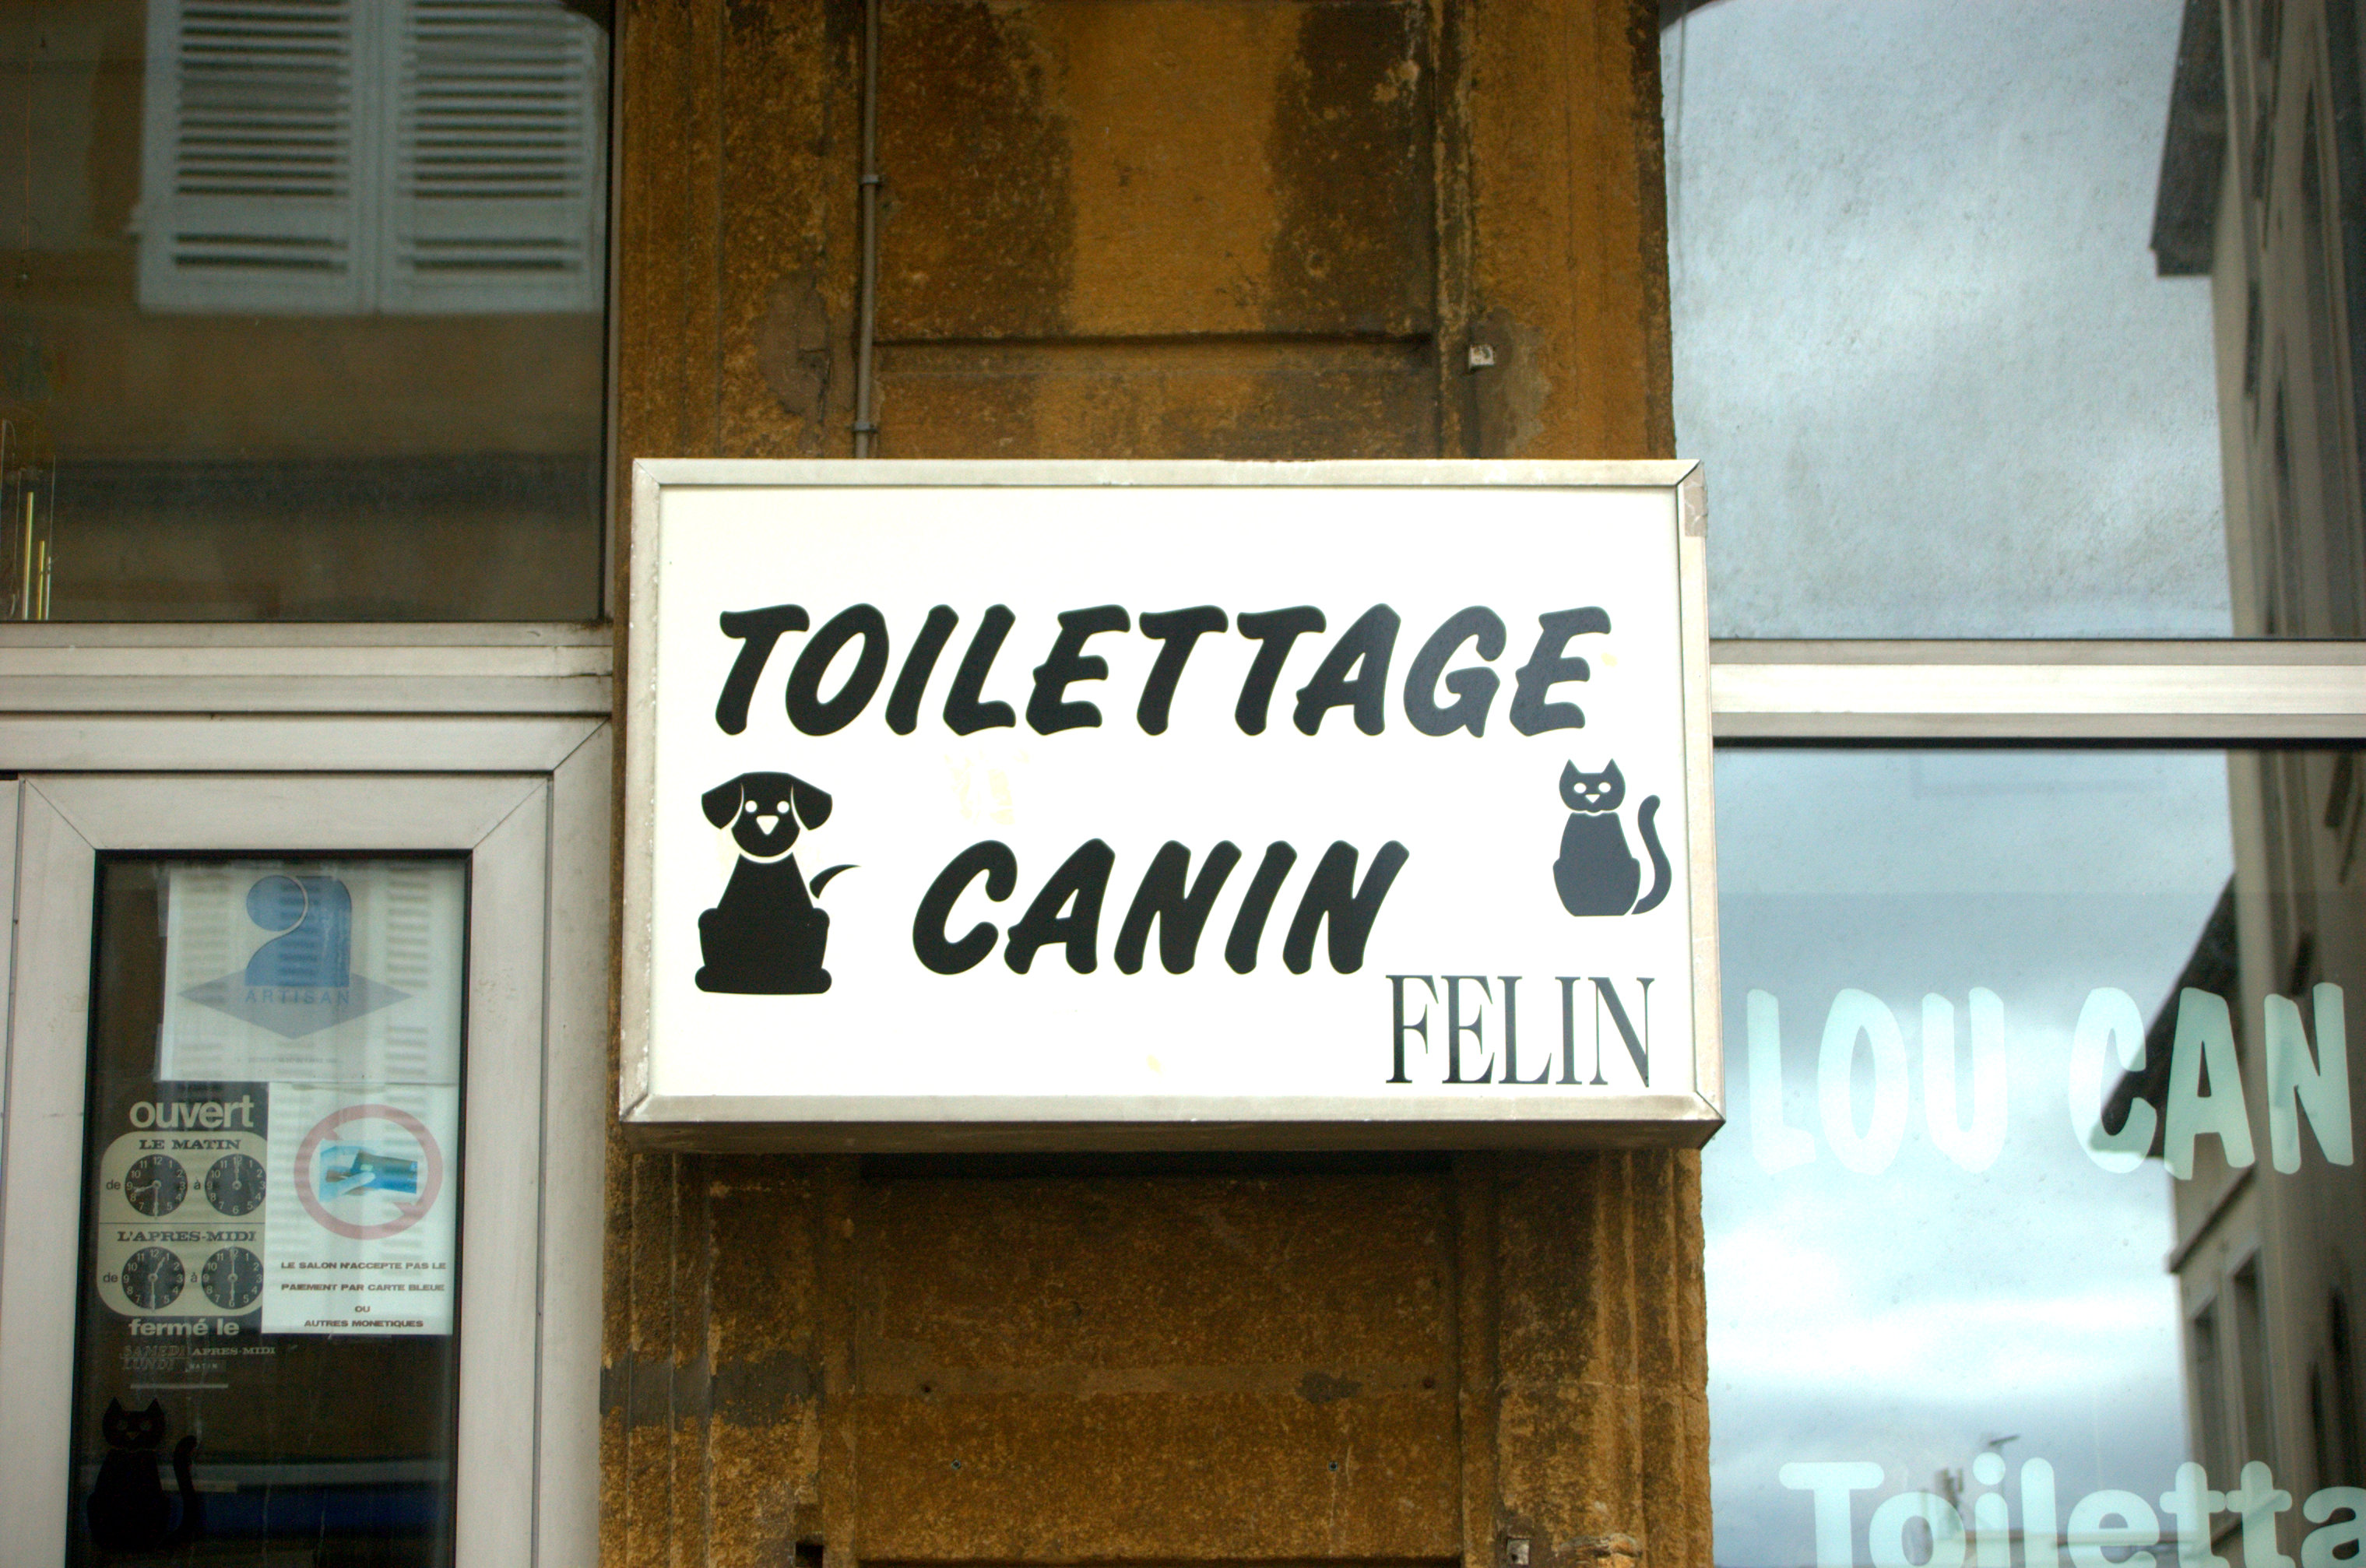 Toilettage Canin